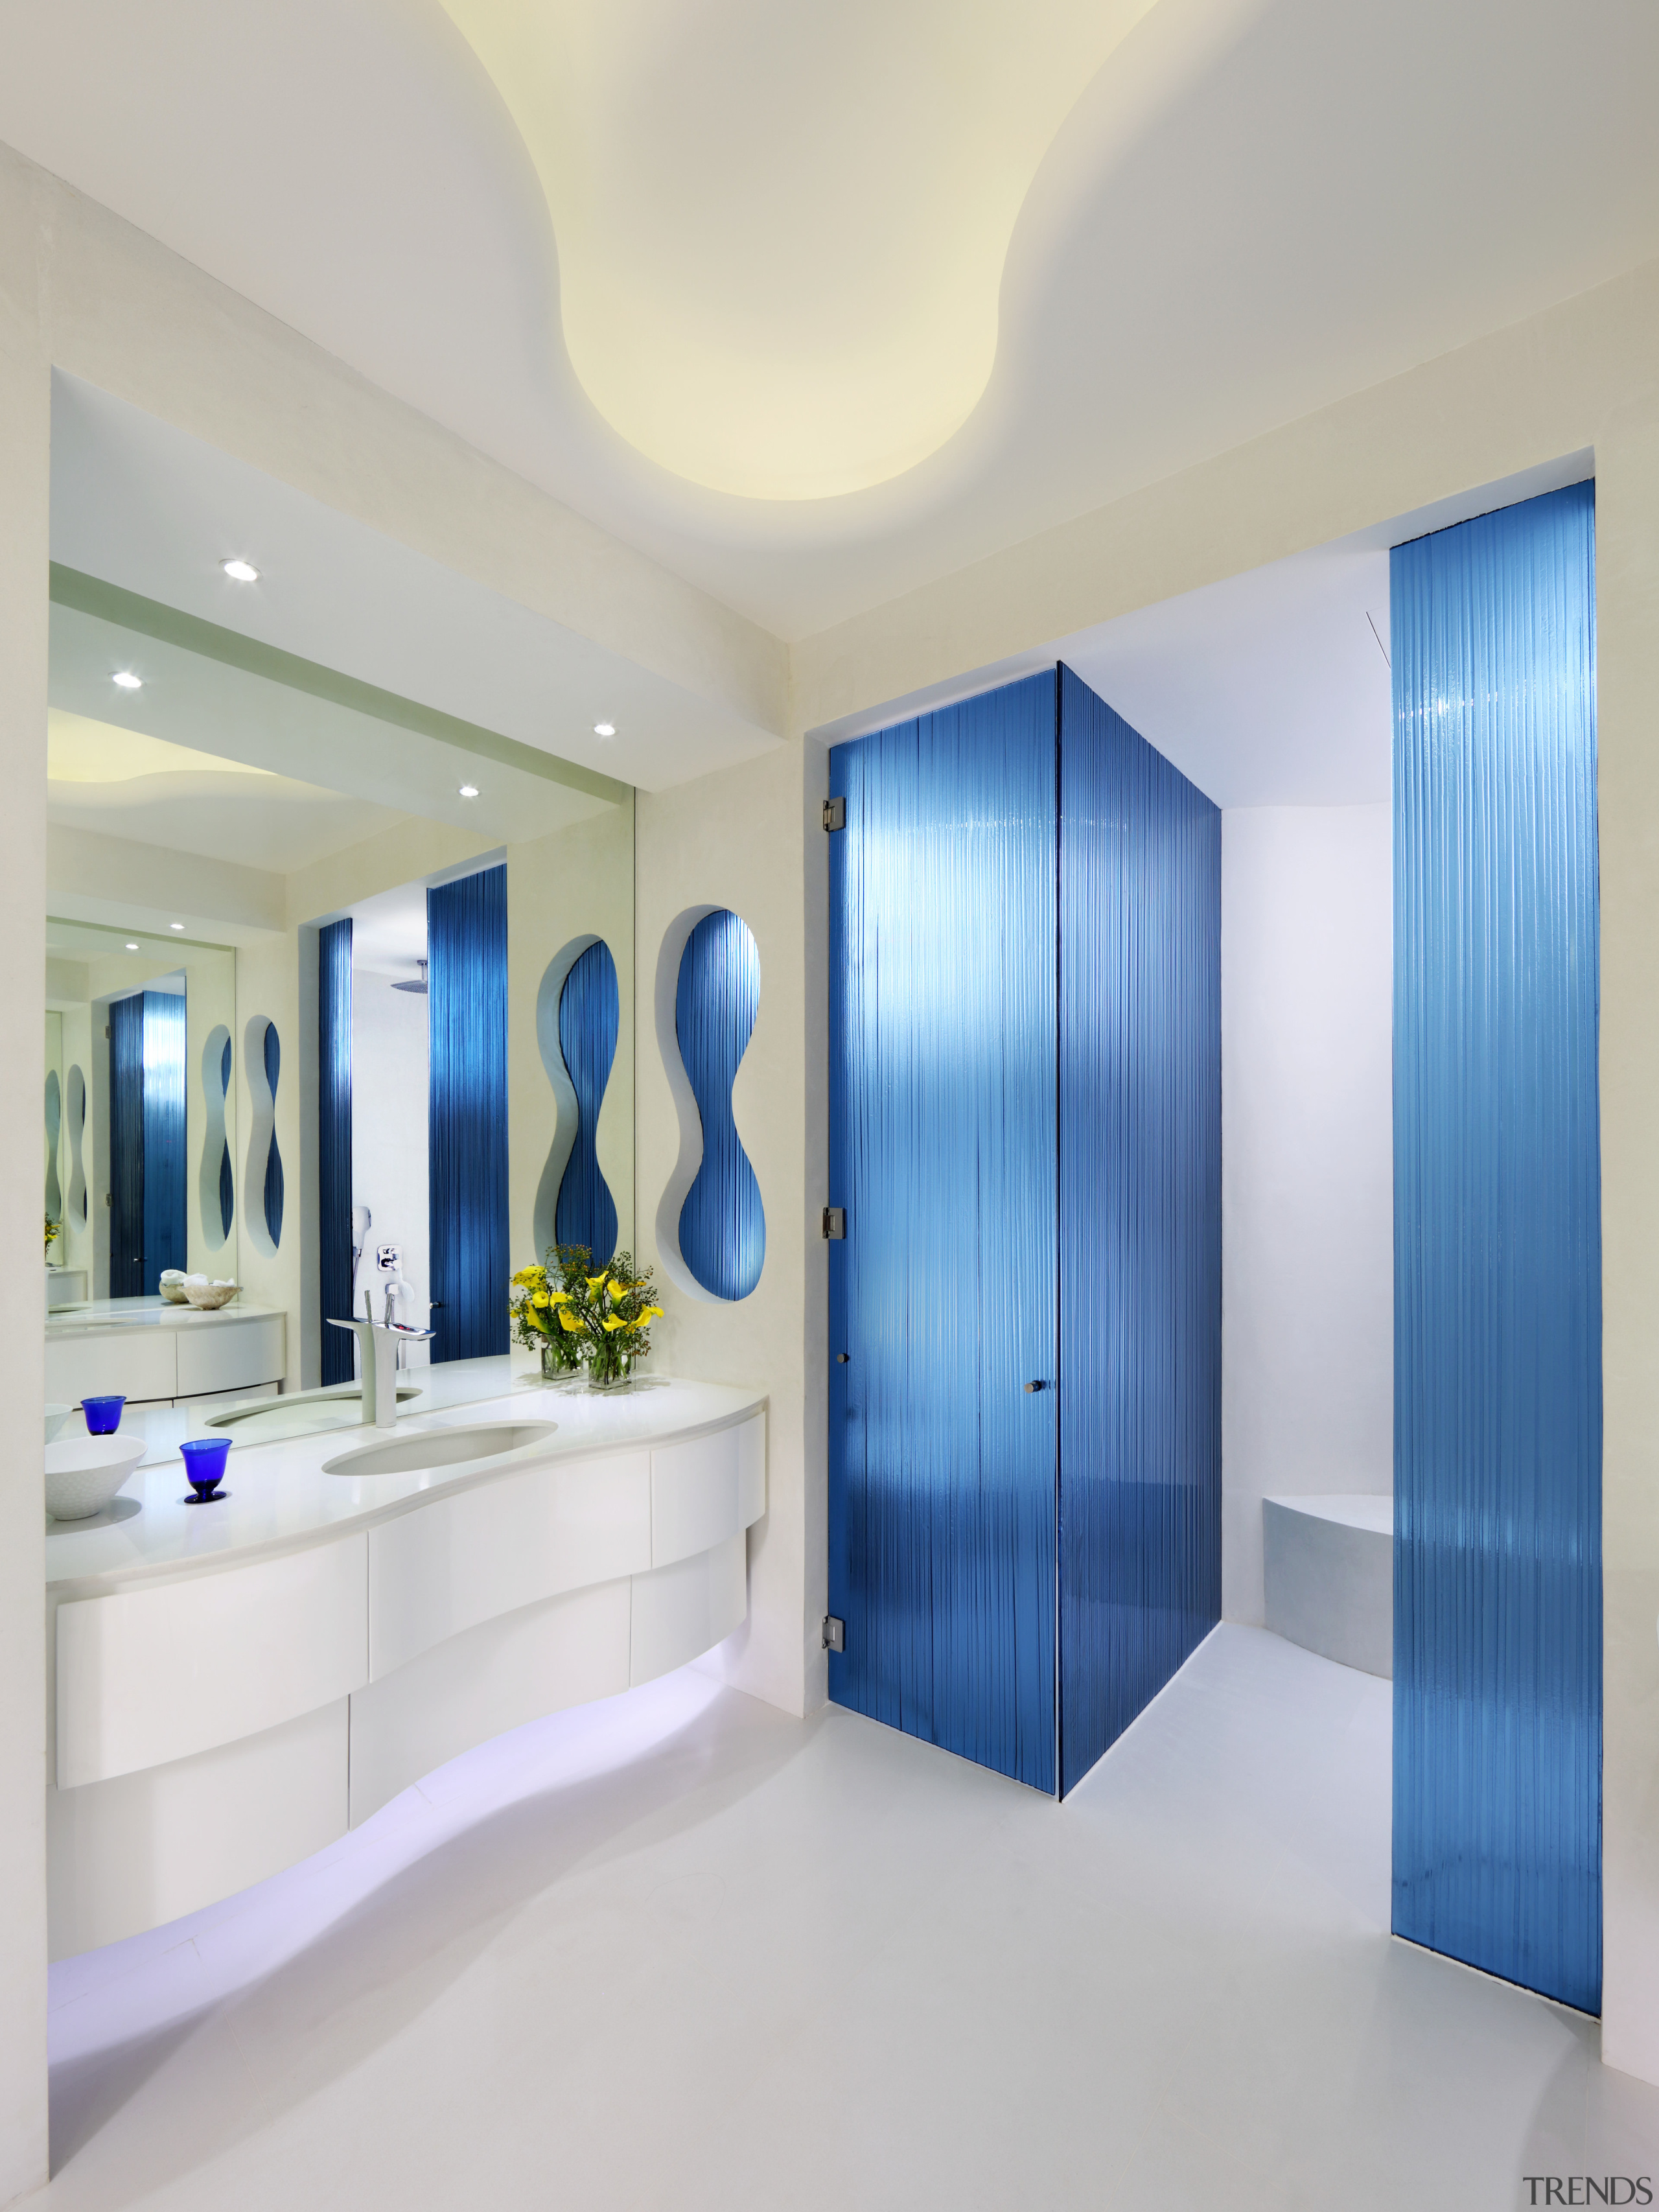 Trends] | As a one-off space, this master ensuite has toilet and ...